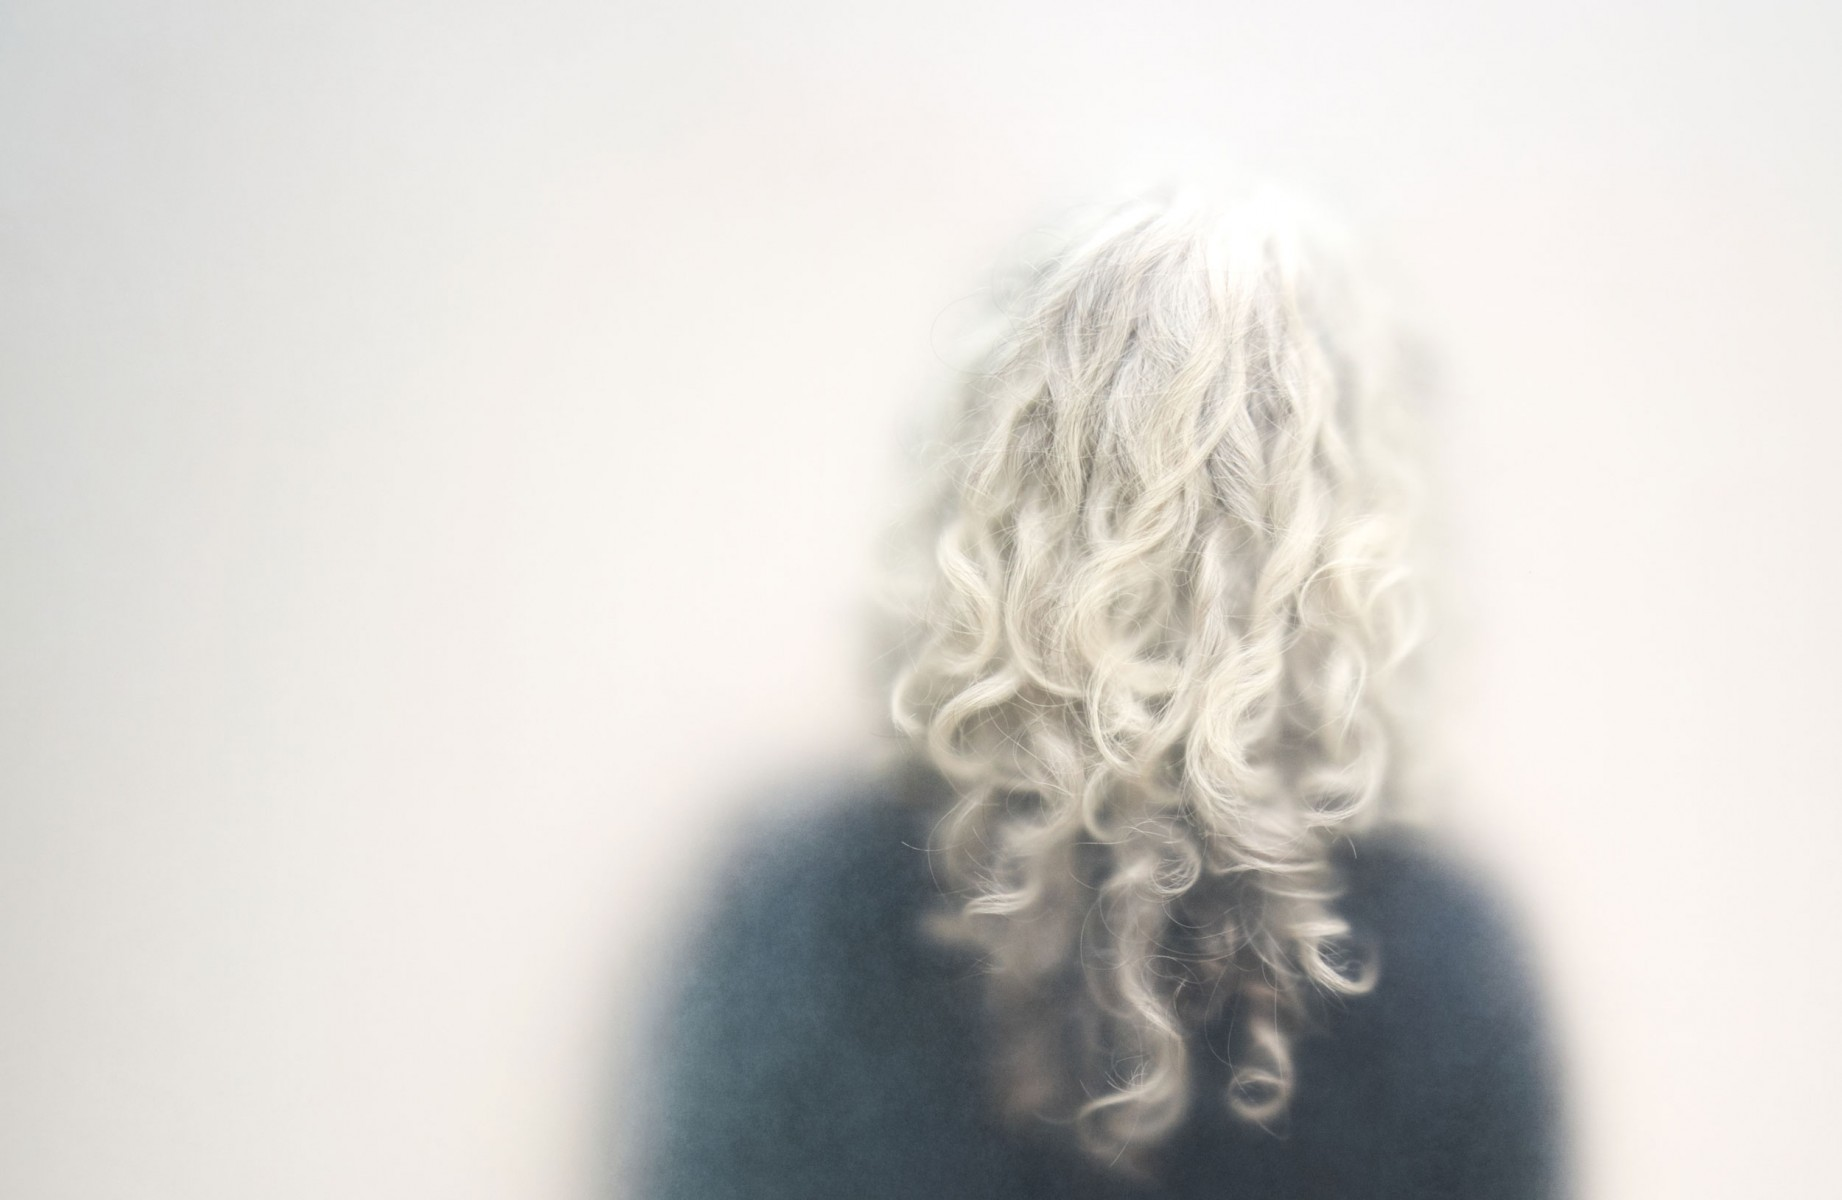 A woman with curly silver hair